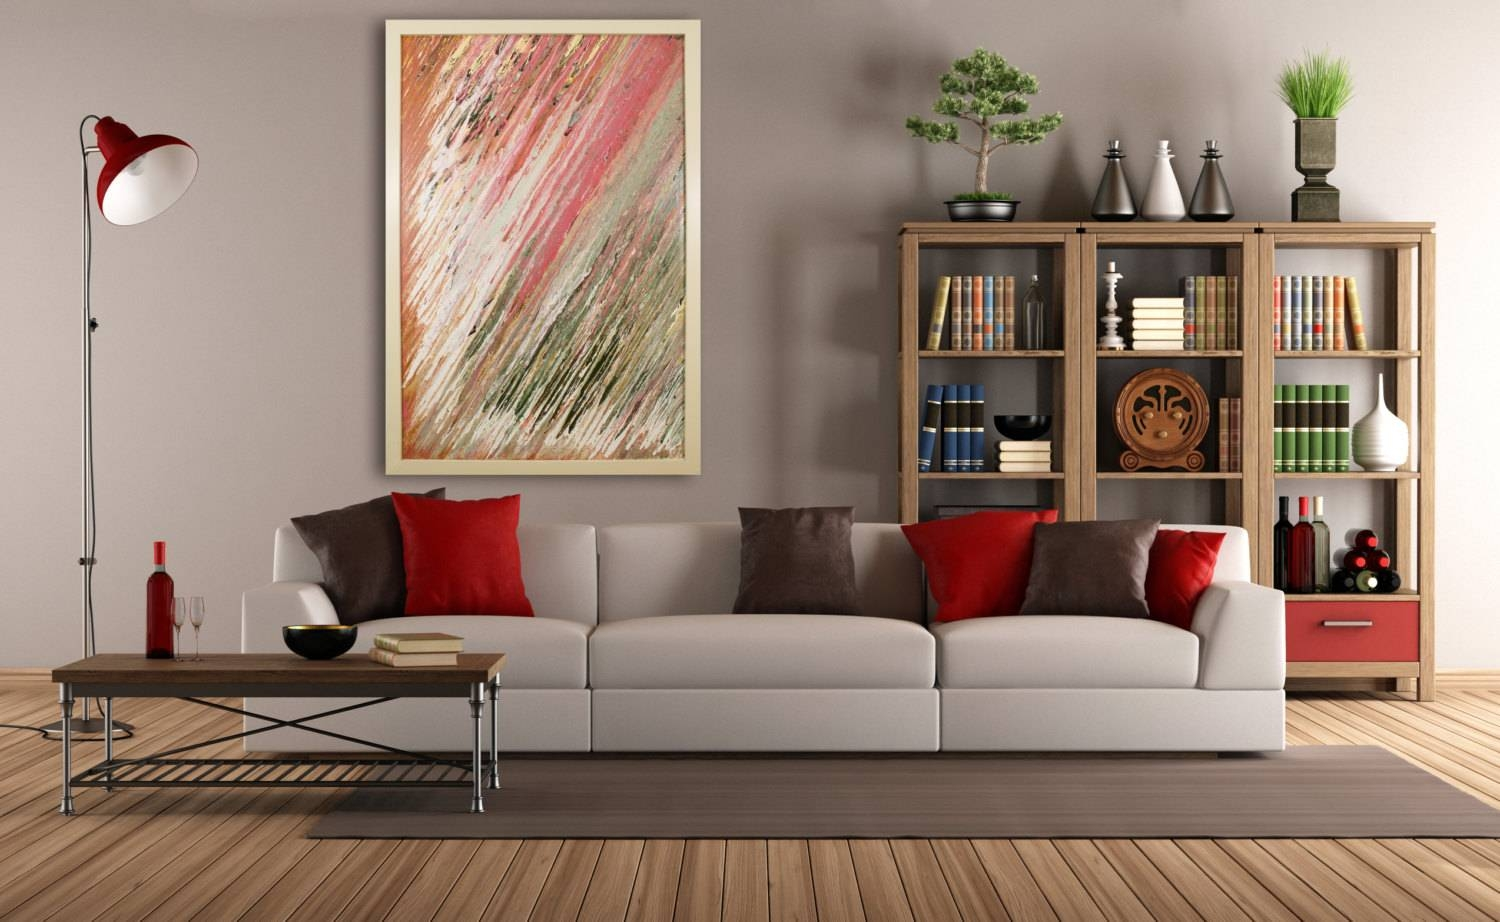 Extra Large Wall Art Original Abstract Glass Art Deco Within Current Large Contemporary Wall Art (View 11 of 20)